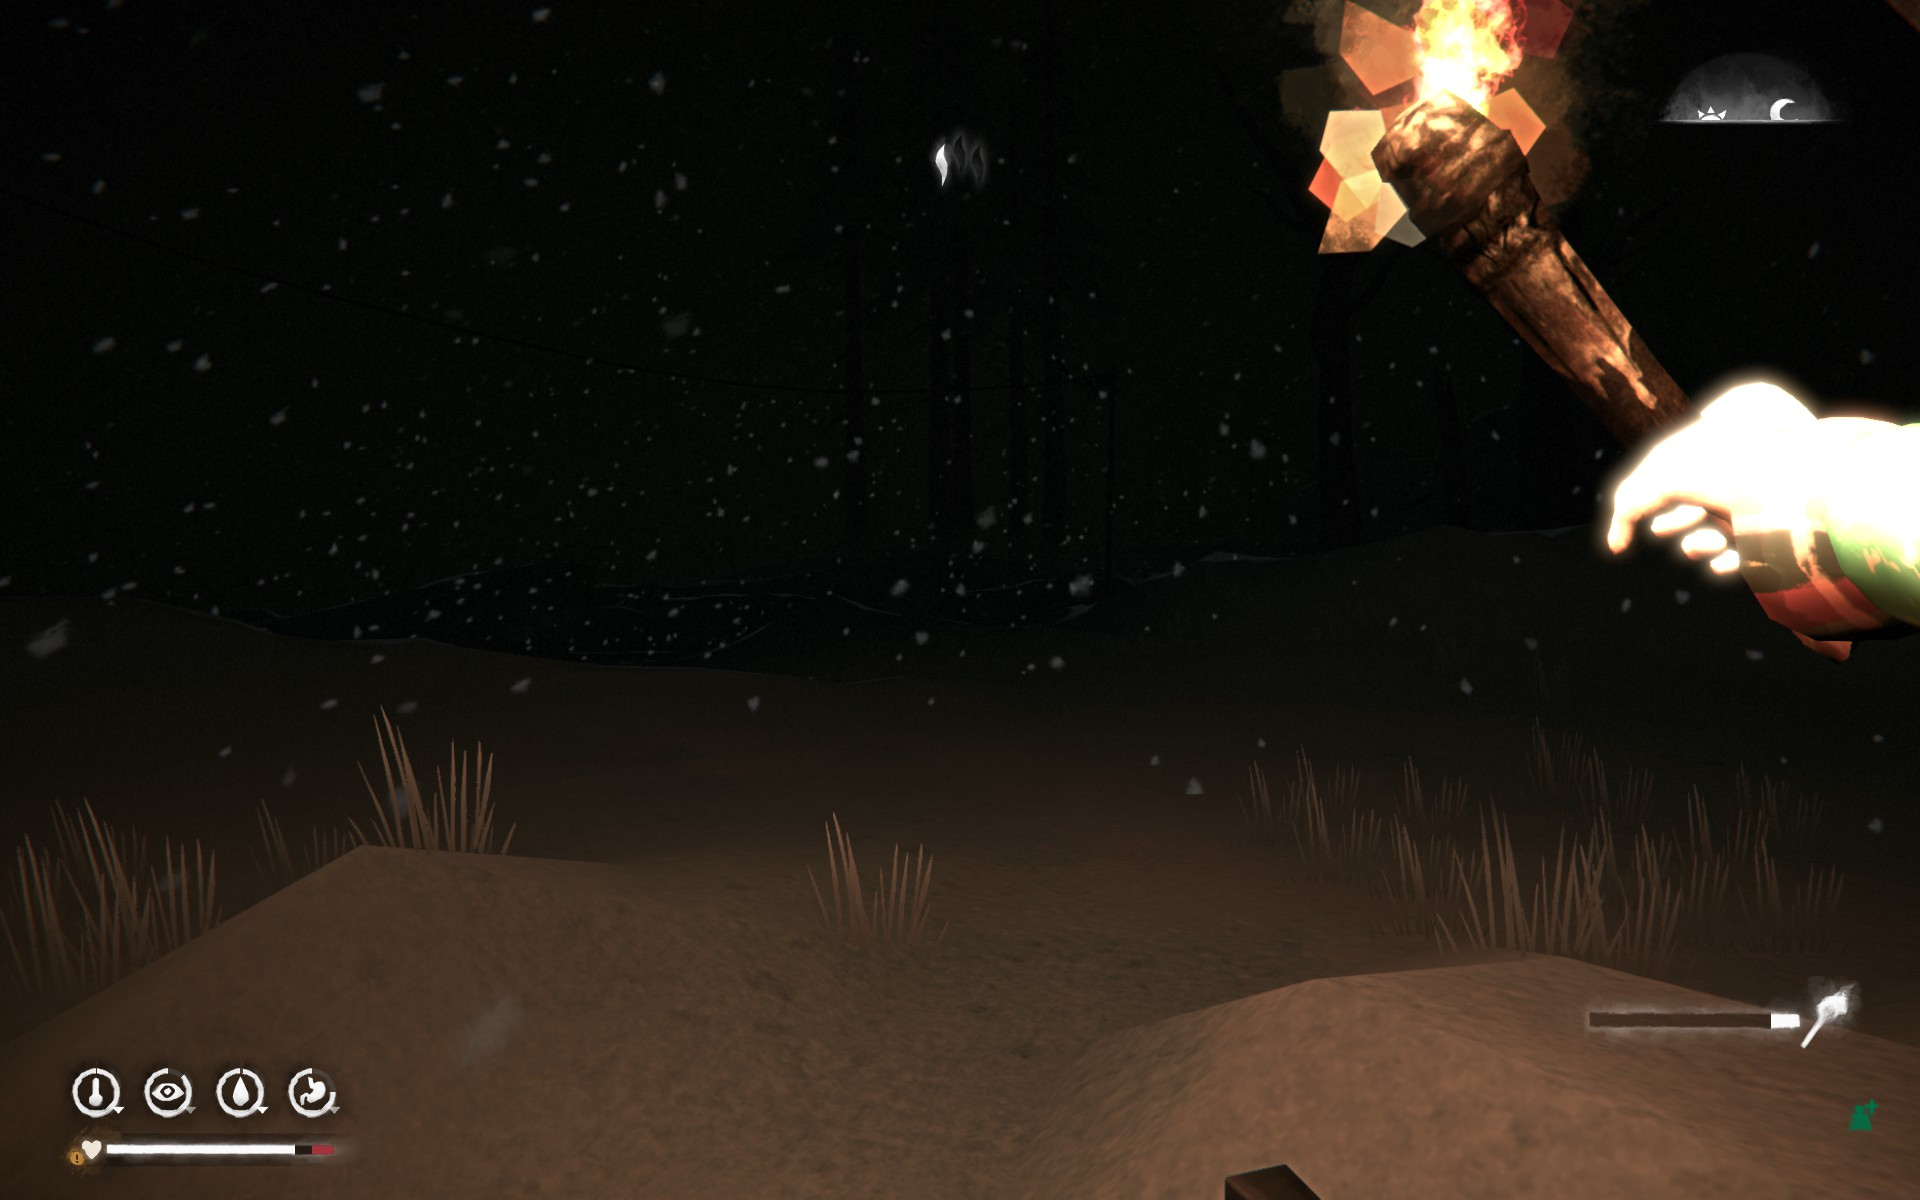 Point of view shot from the computer game The Long Dark. The character holds a torch in their right hand. It's night, and snowing.